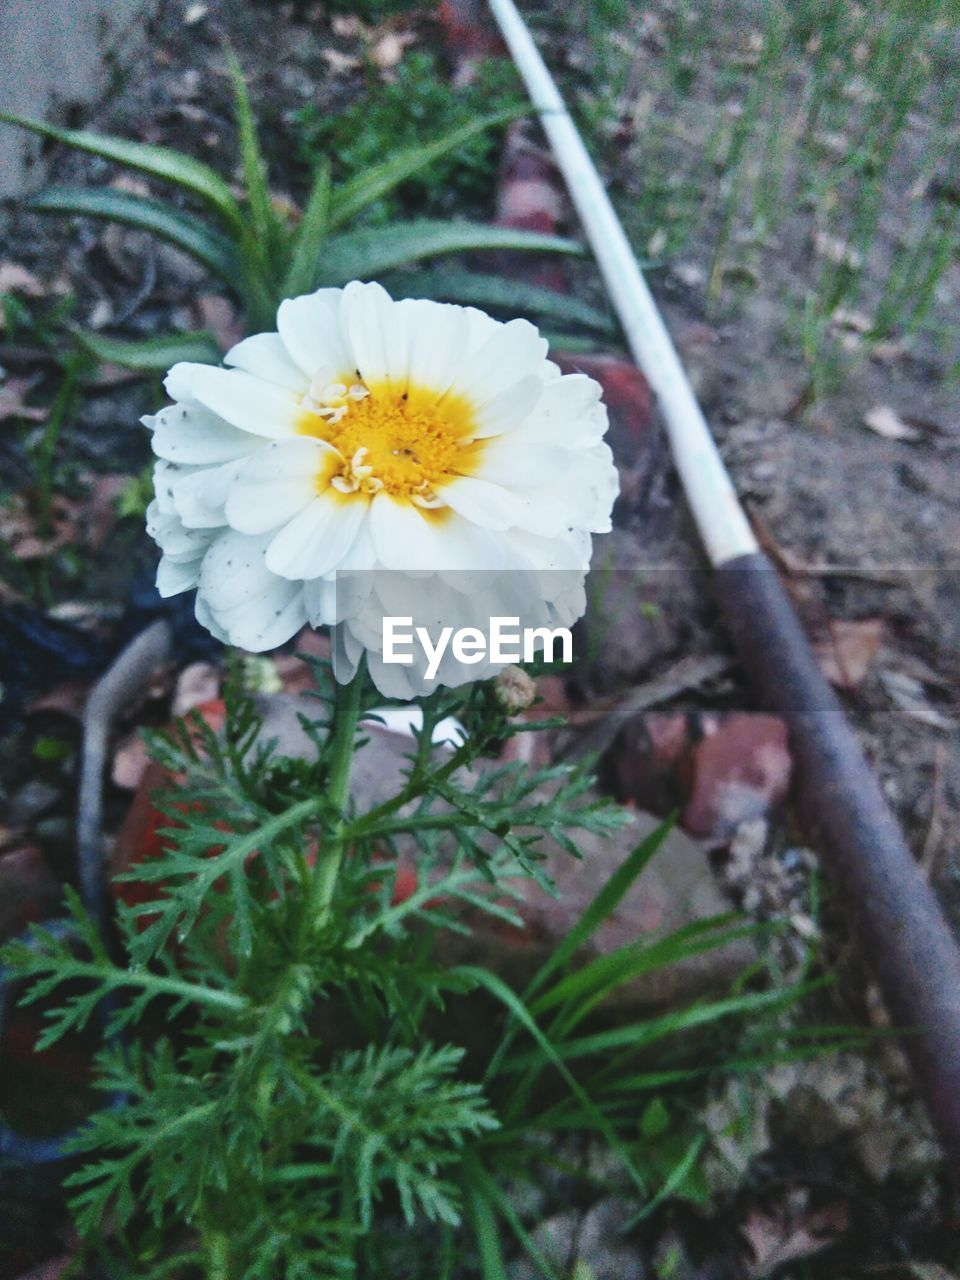 flower, fragility, petal, nature, freshness, beauty in nature, growth, flower head, outdoors, close-up, day, focus on foreground, plant, no people, yellow, blooming